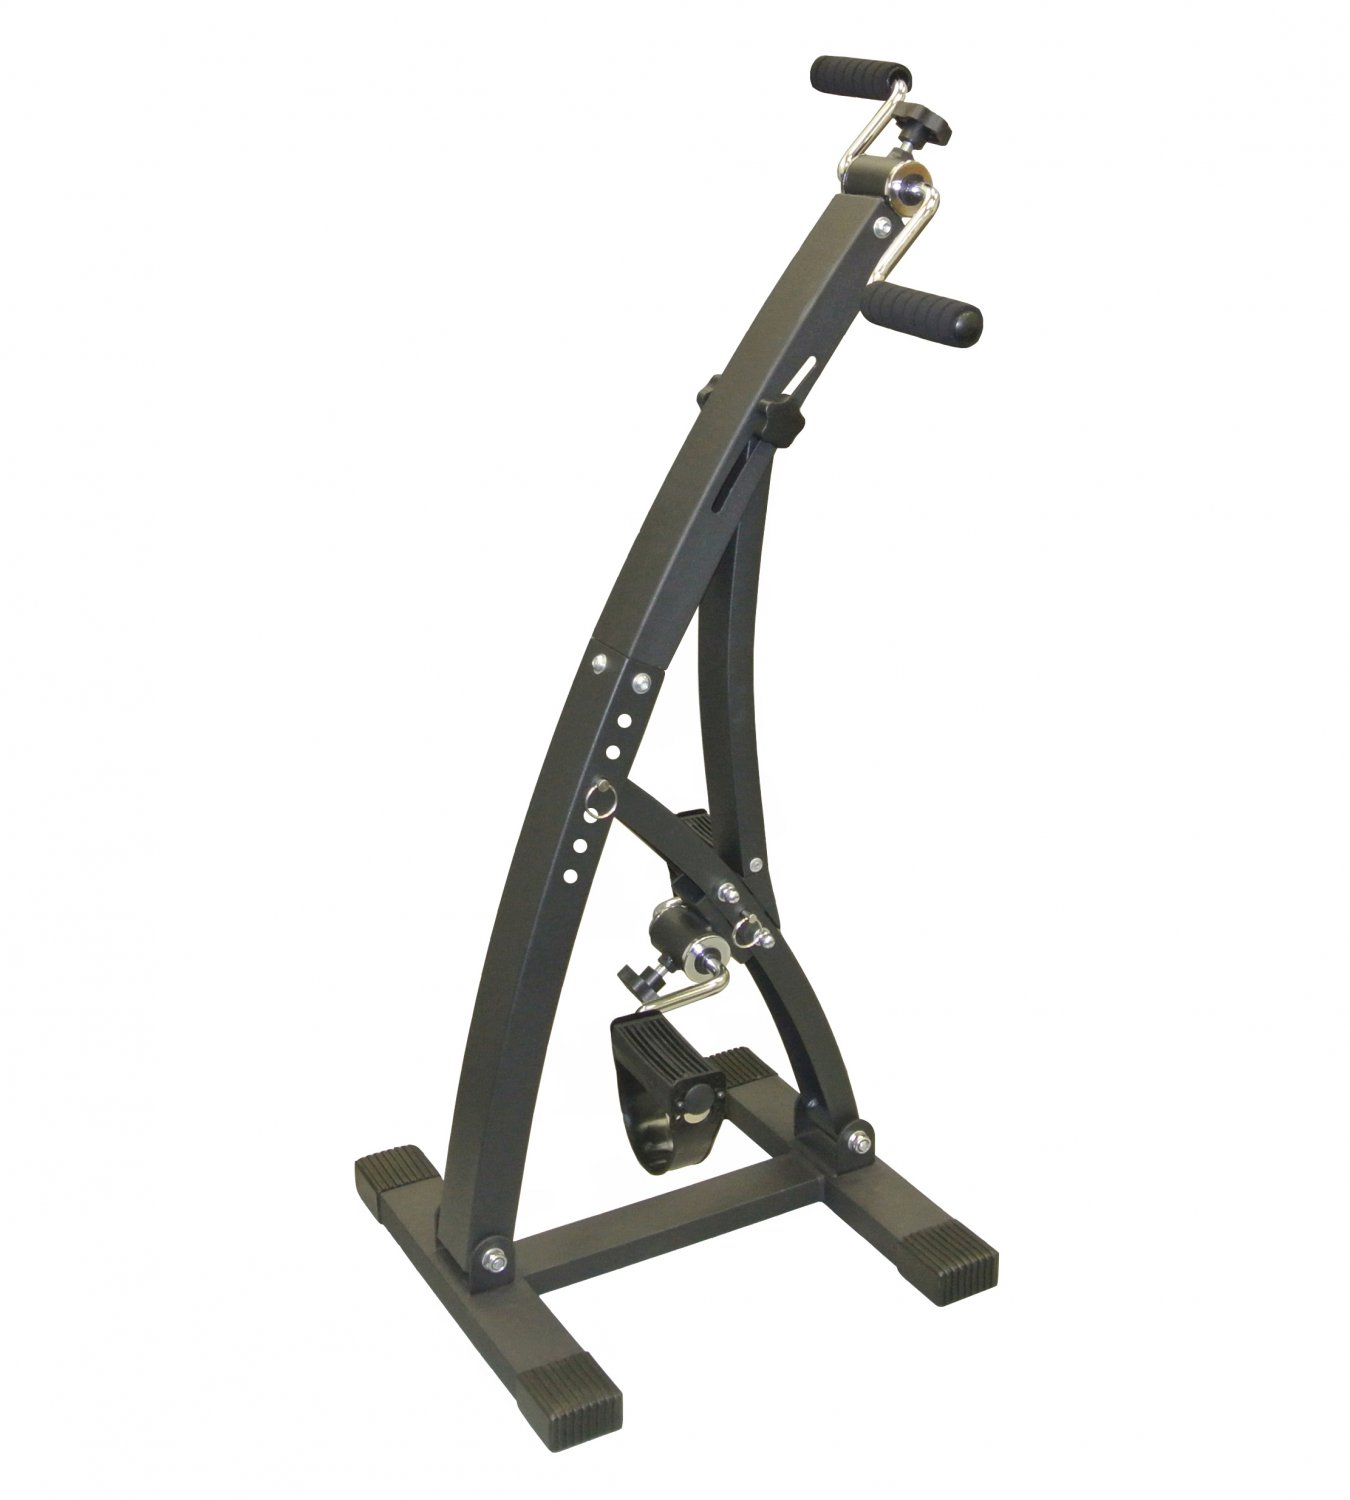 Carepeutic BetaFlex Total-Body Home Physio Exercise Bike Work Out for Arms and Legs at the same time